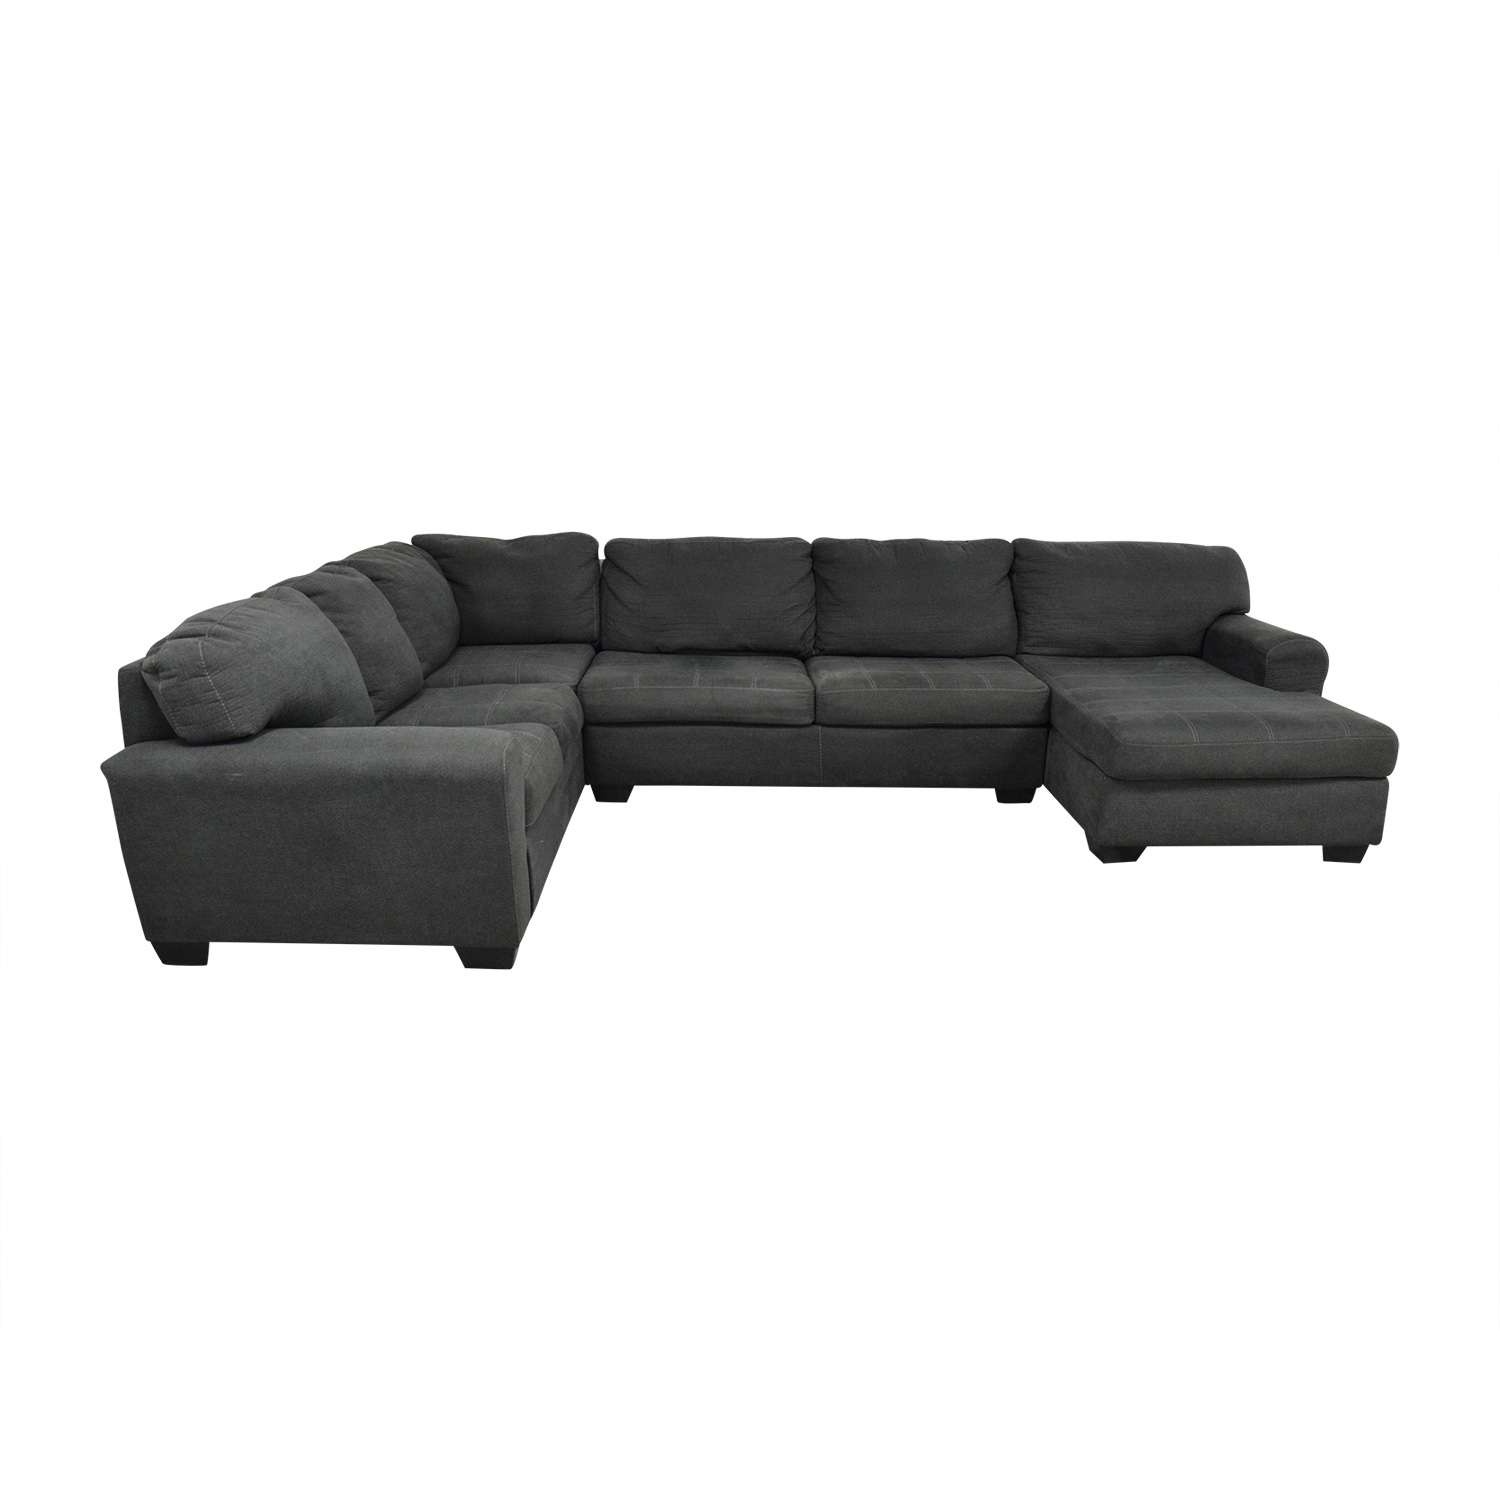 Ashley Furniture Ashley Furniture 3-Piece Sectional Sofa used